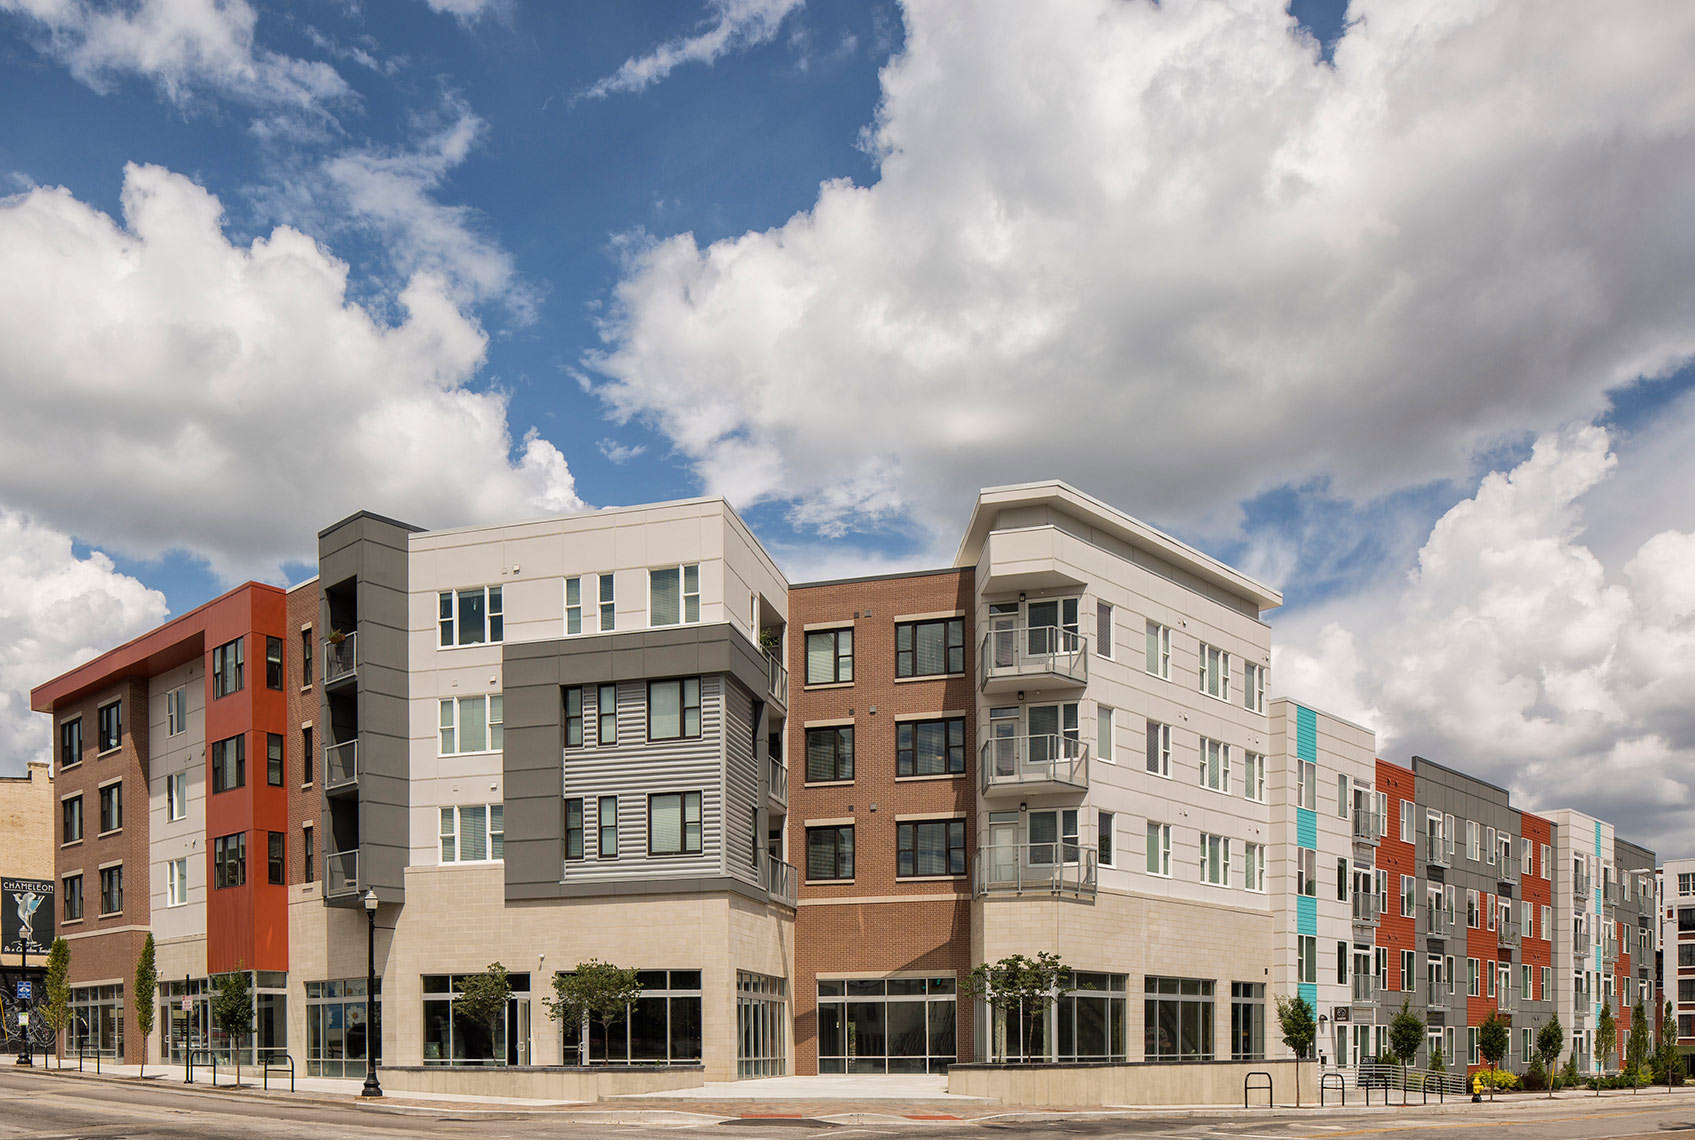 Urban_Mixed_Use_Multifamily